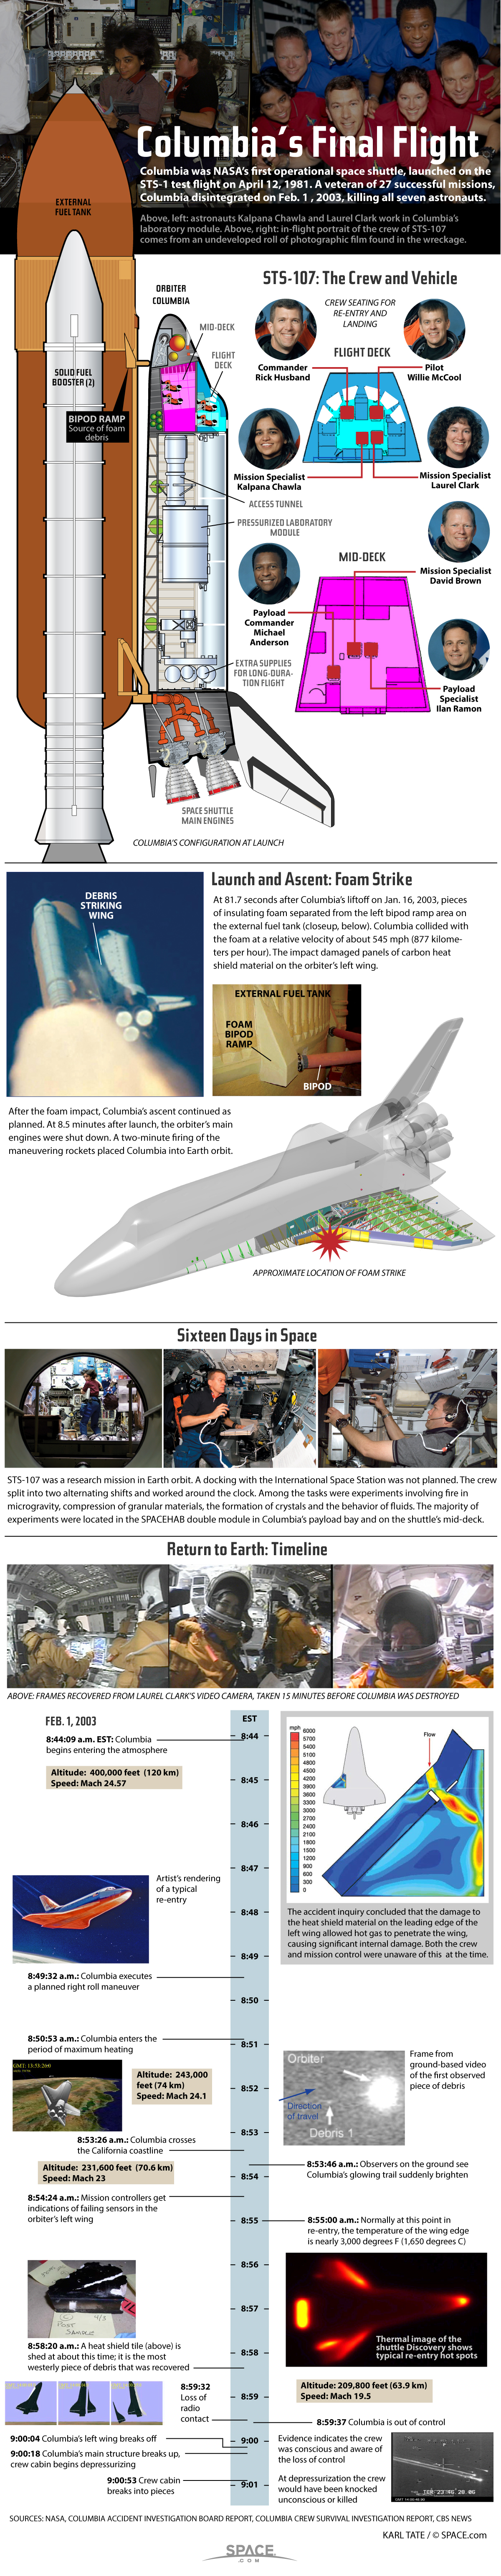 See how the Columbia shuttle accident occurred in this SPACE.com infographic.